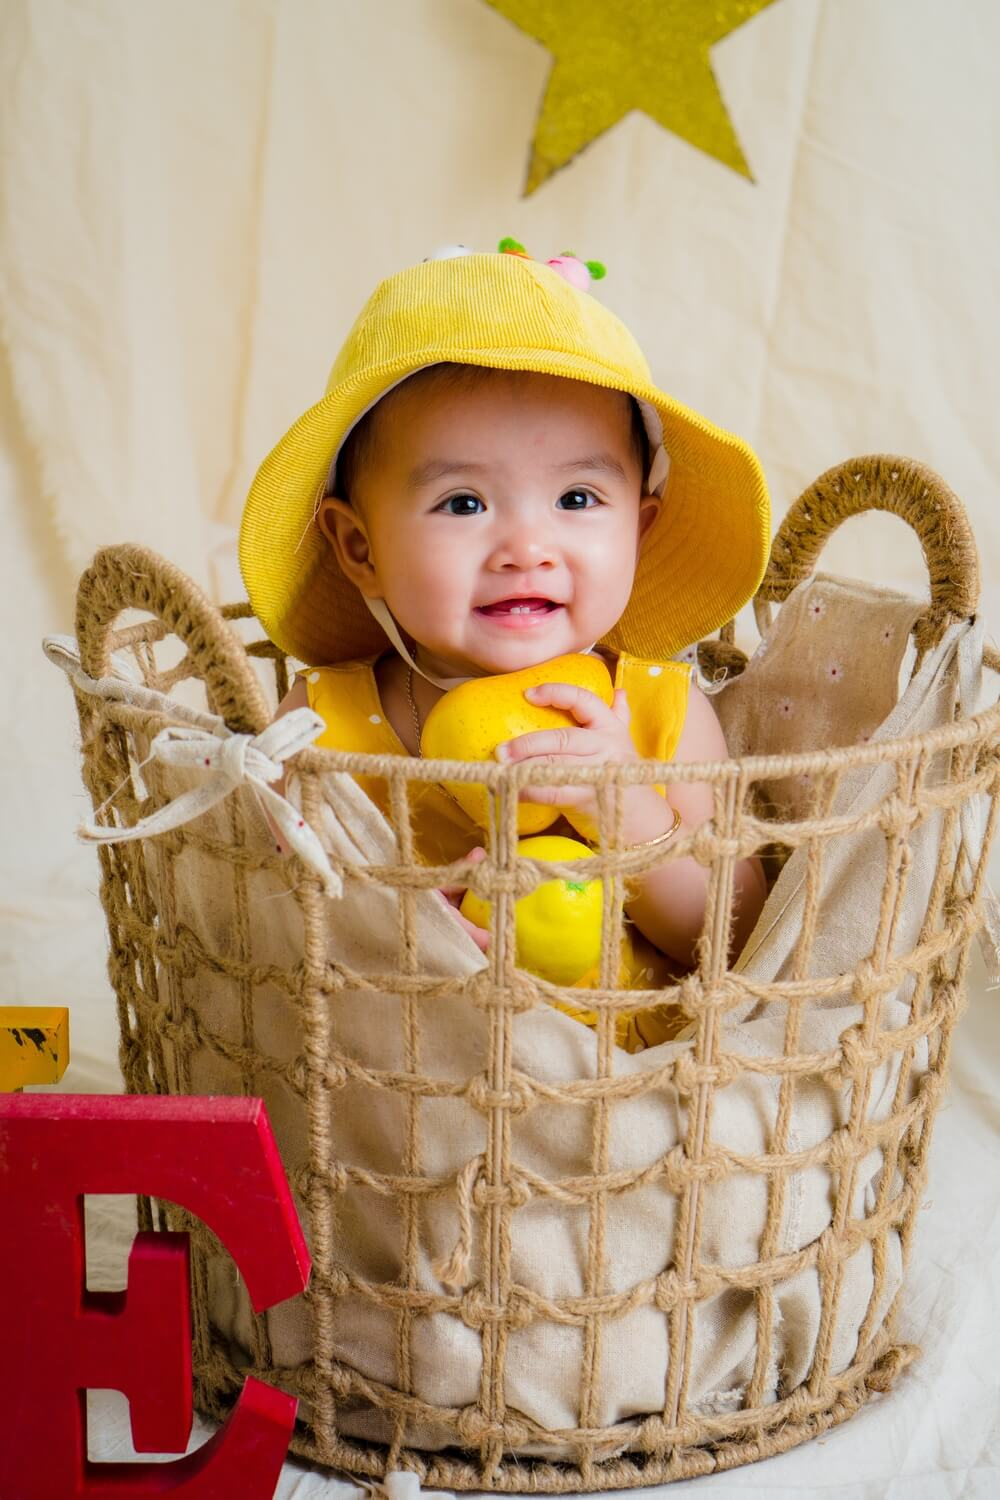 baby first teeth smiling in a basket wearing a yellow hat and yellow cloth holding yellow balls